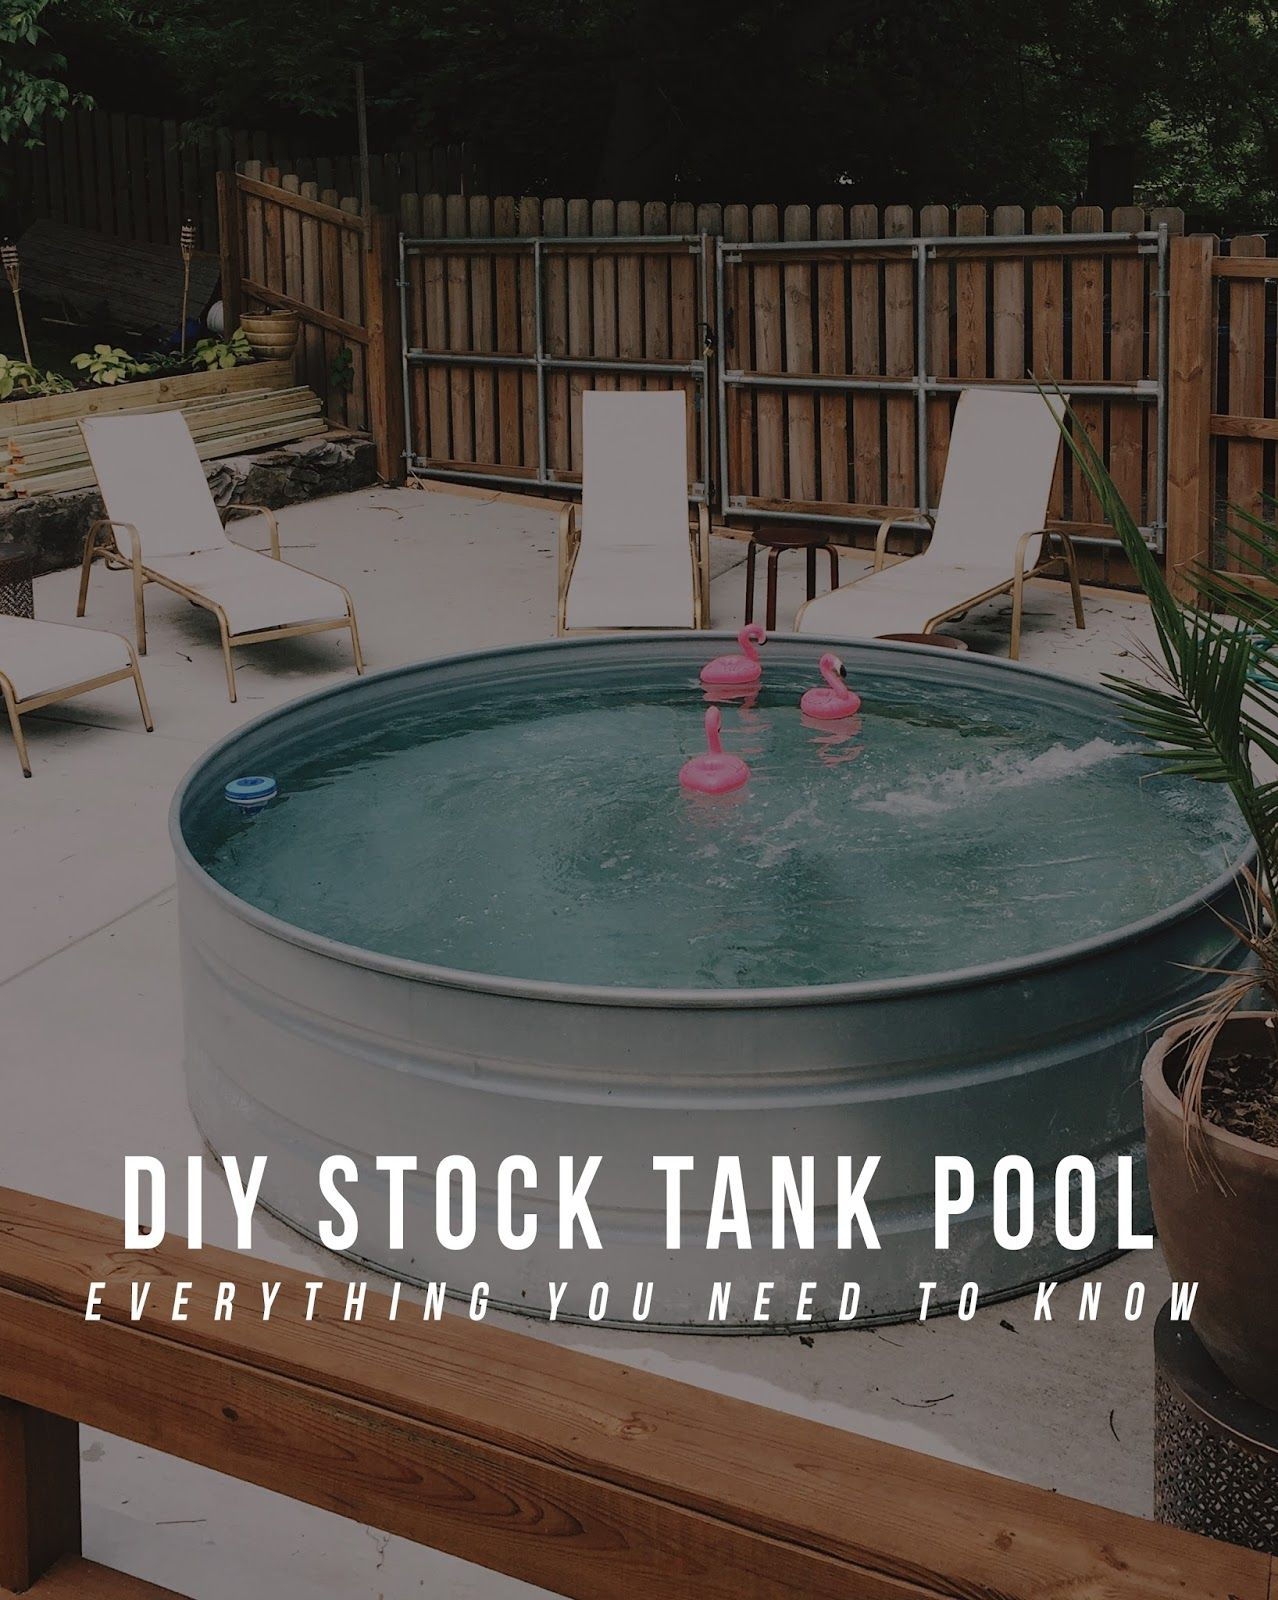 Diy stock tank pool everything you need to know for Diy small pool